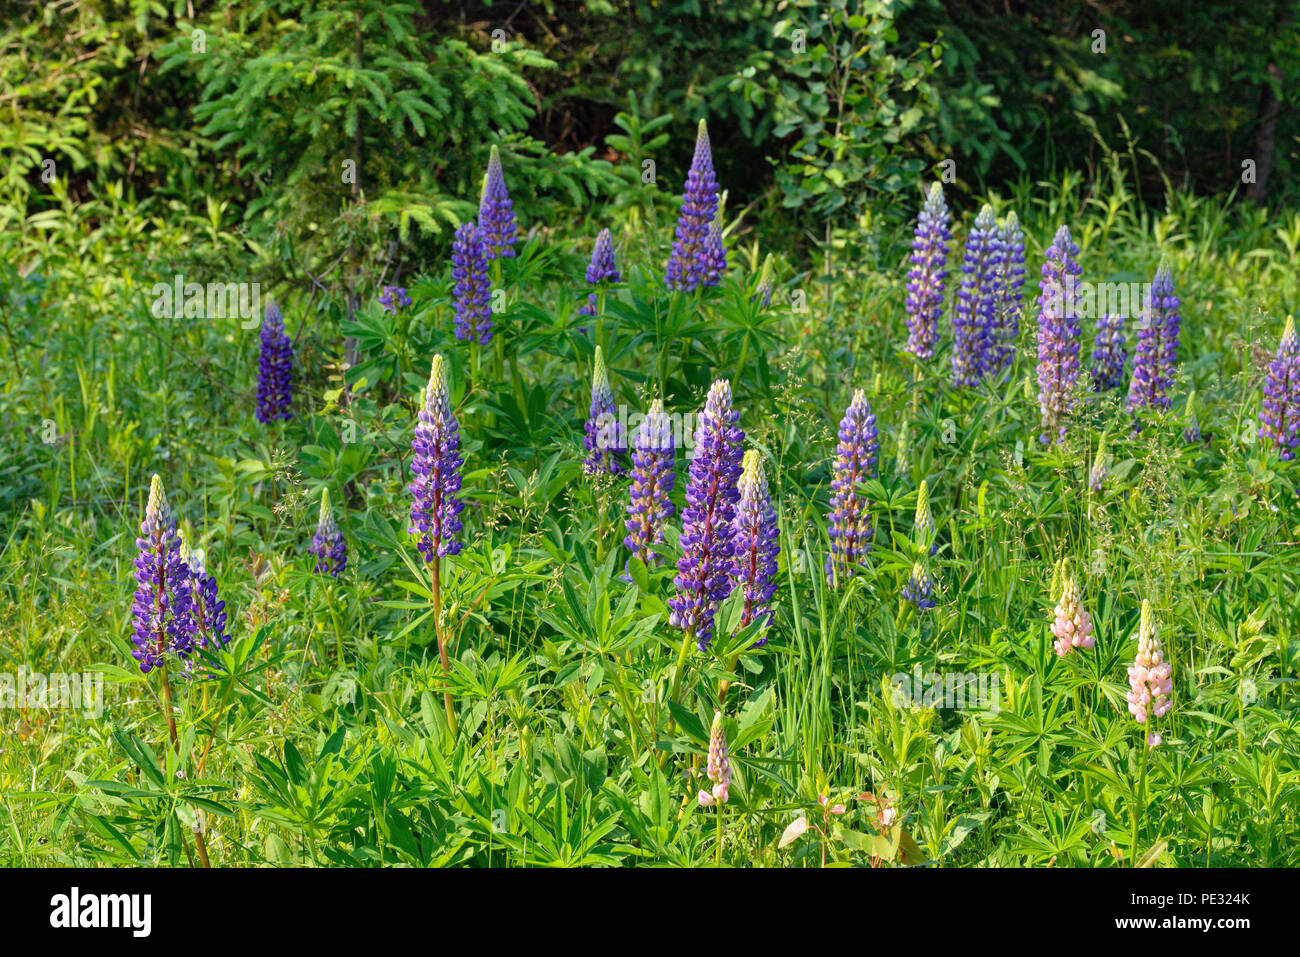 Escaped lupines in bloom, Greater Sudbury, Ontario, Canada - Stock Image